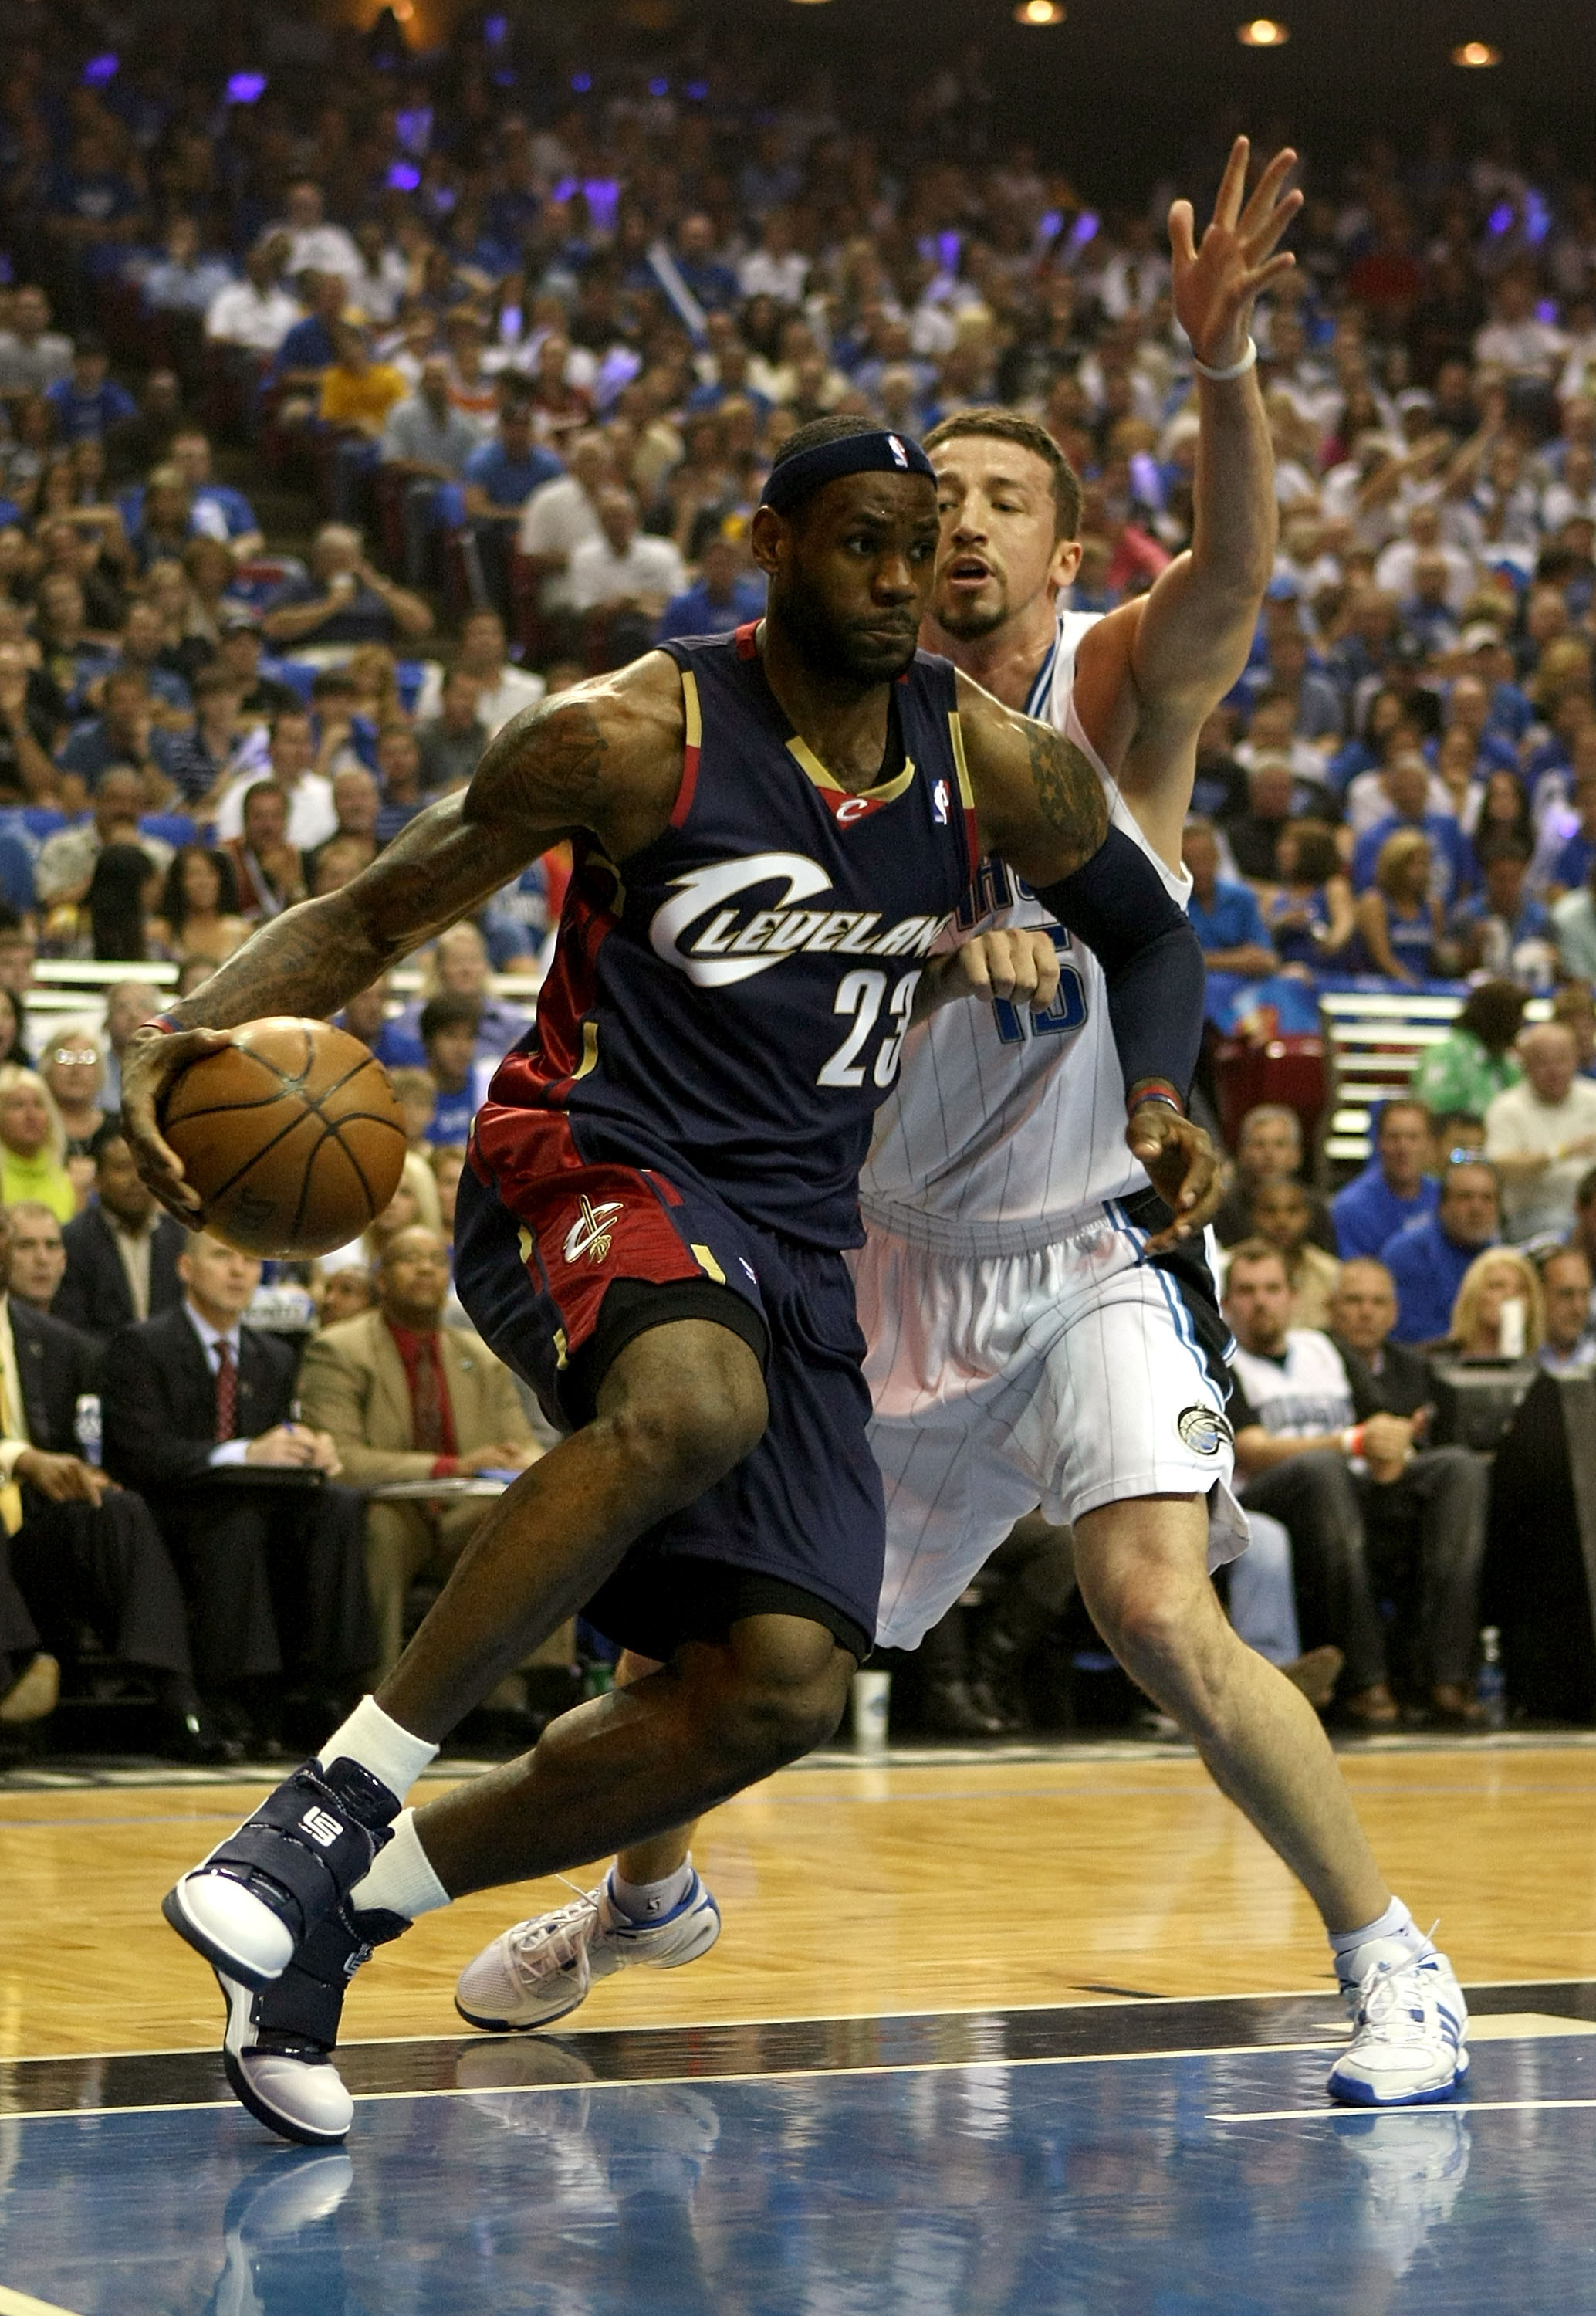 ORLANDO, FL - MAY 30:  LeBron James #23 of the Cleveland Cavaliers drives to the hoop against Hedo Turkoglu #15 of the Orlando Magic in Game Six of the Eastern Conference Finals during the 2009 Playoffs at Amway Arena on May 30, 2009 in Orlando, Florida.